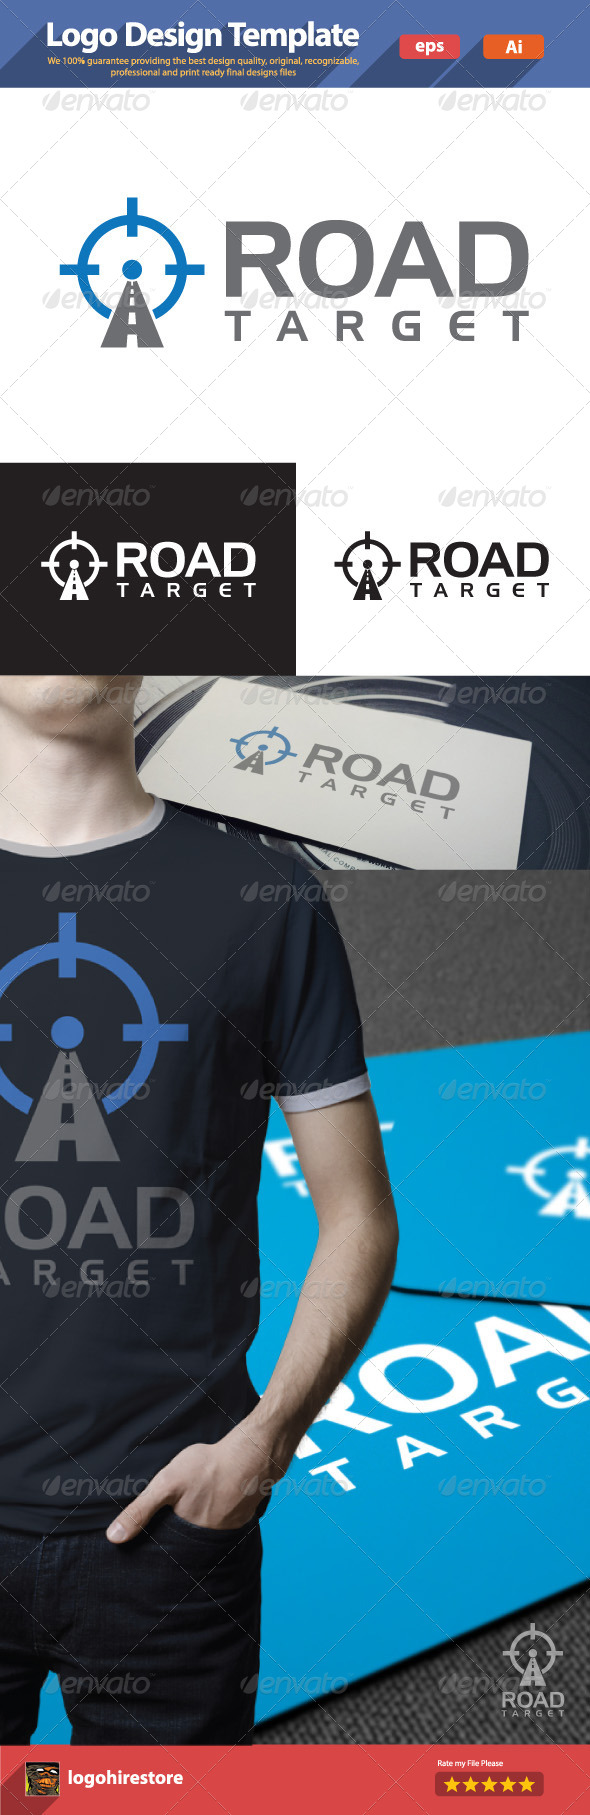 GraphicRiver Road Target 6183176